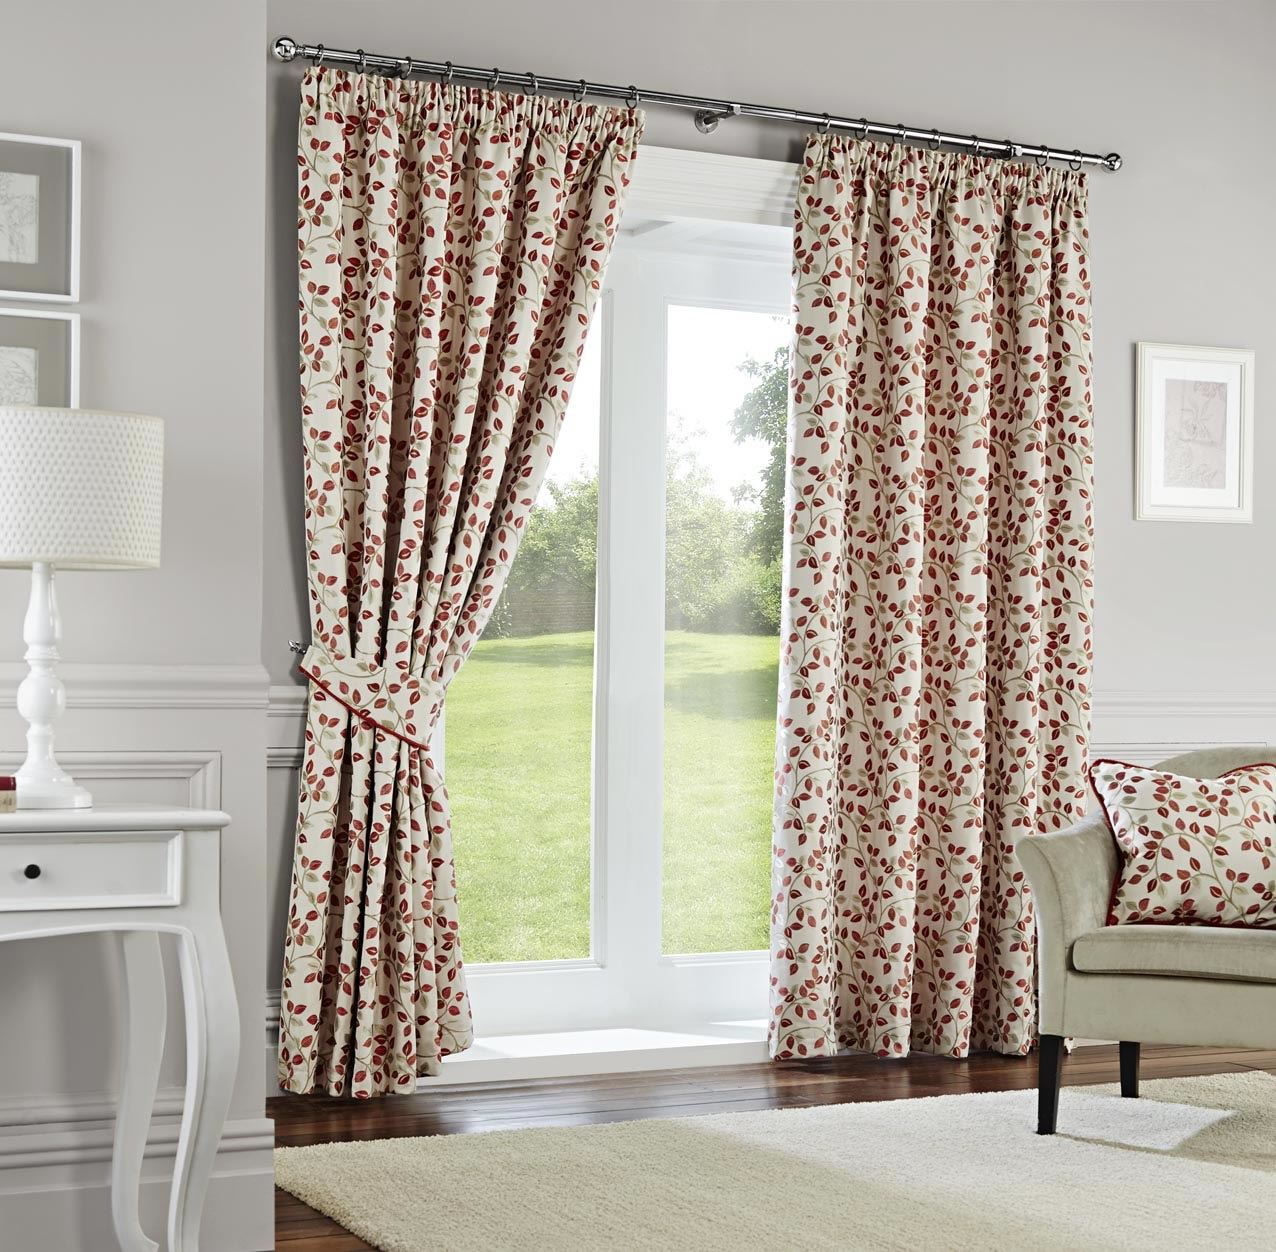 Superior High Quality Yarn Dyed Woven Curtains With A Small Leaf Pattern. These  Beautiful Curtains Are Fully Lined And Have Been Fitted With A Pencil Pleat  Tape ...